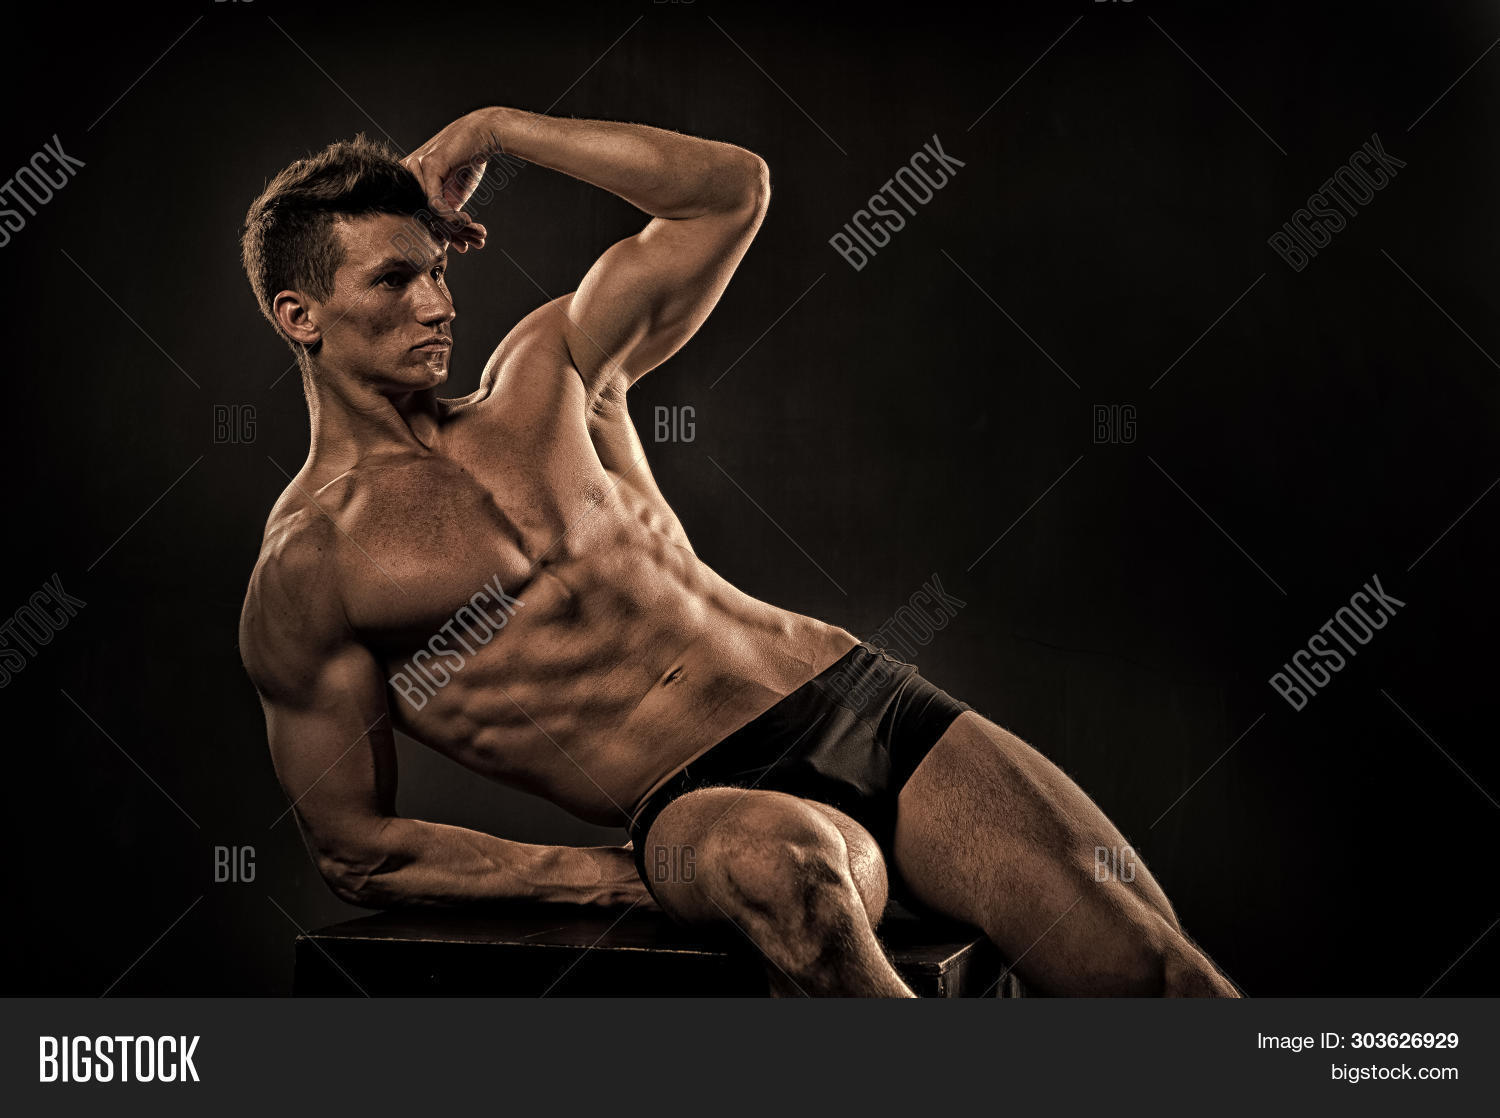 ab,activity,arm,athlete,athletic,background,belly,biceps,black,body,bodybuilder,bodybuilding,bodycare,caucasian,chest,coach,diet,dieting,energetic,energy,fit,fitness,flex,gym,handsome,health,healthy,lifestyle,macho,man,muscle,muscular,power,retro,show,sport,sportsman,strong,torso,trainer,training,triceps,vintage,wellness,workout